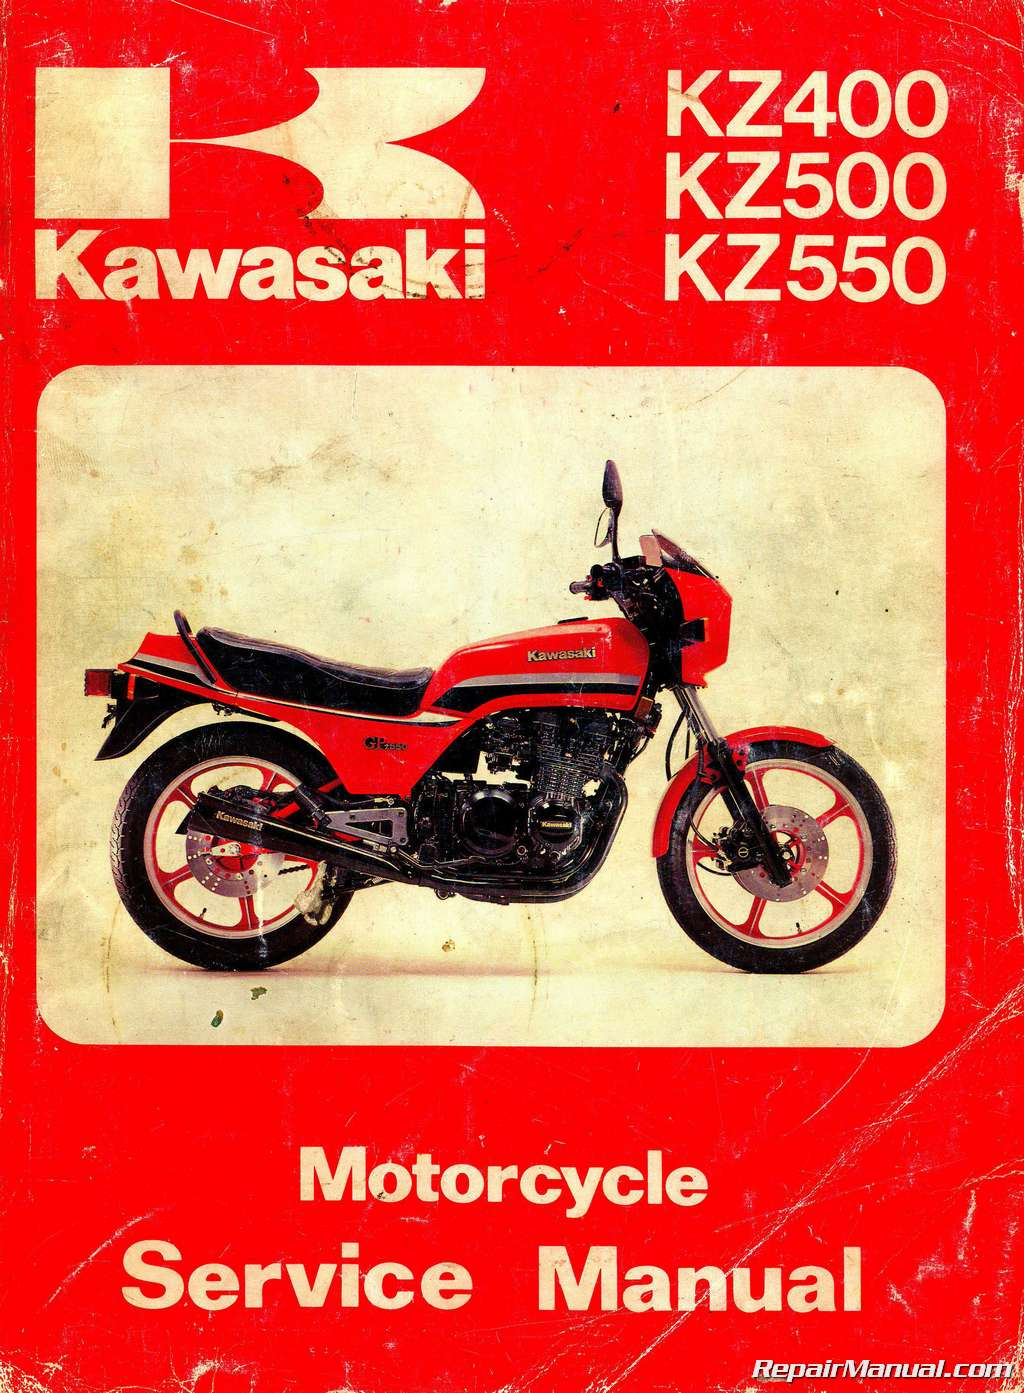 WRG-7265 1979 Kz400 Wiring Diagram